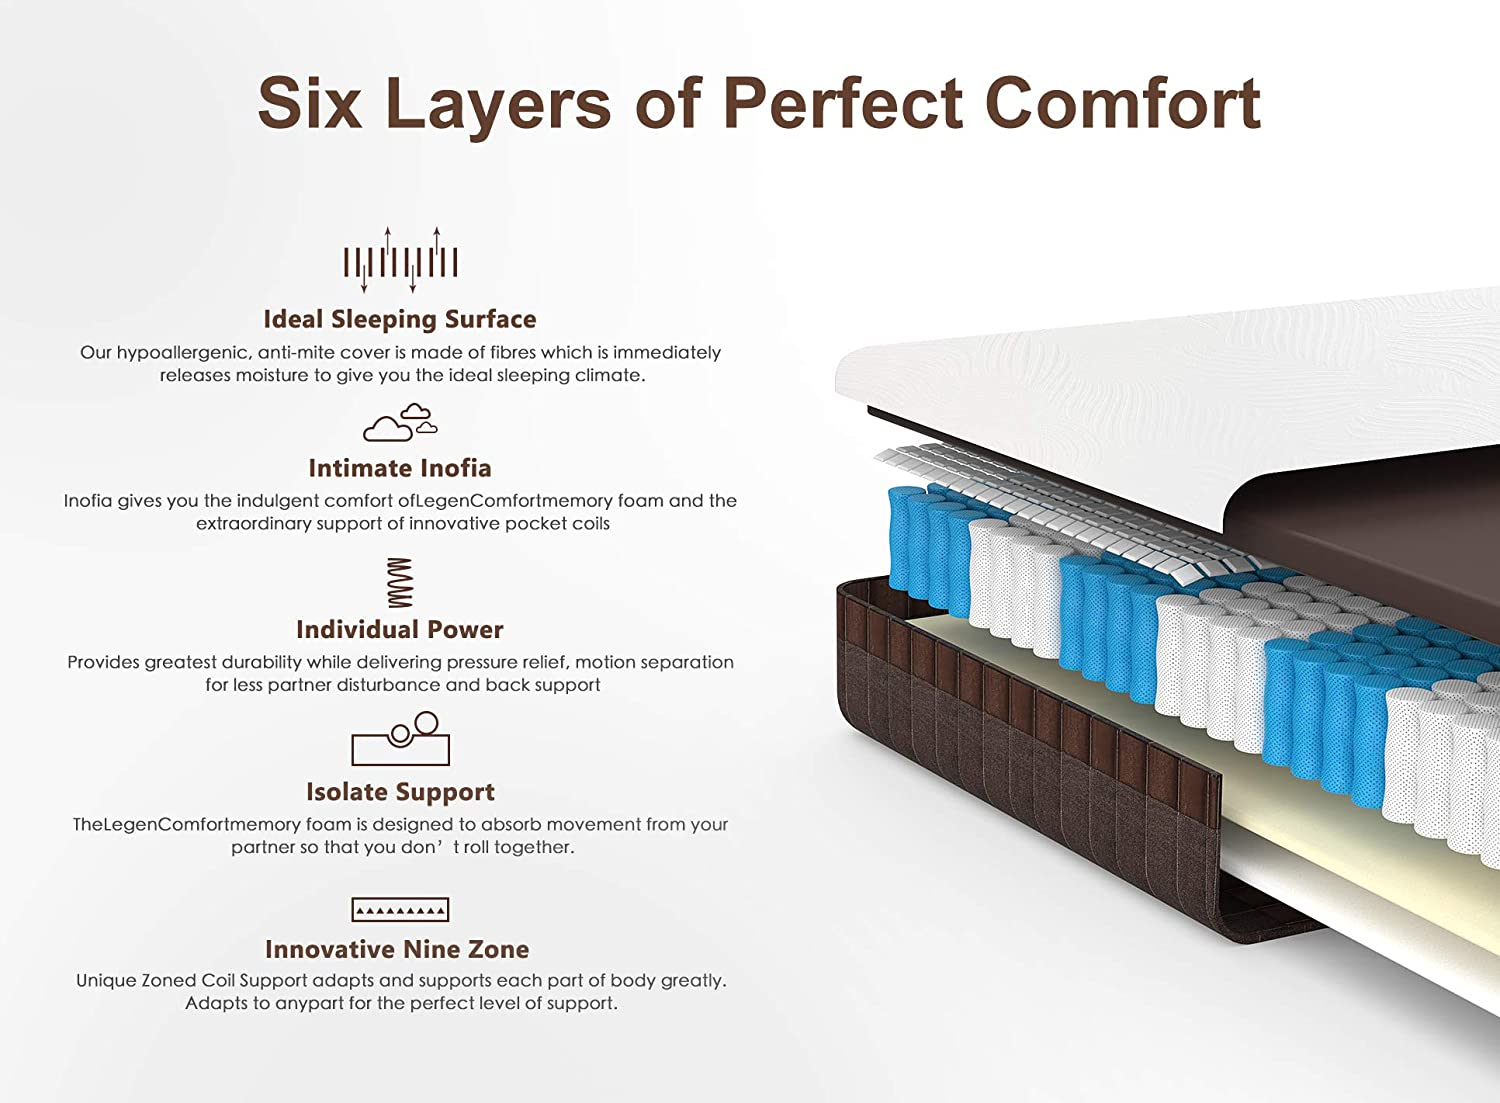 Sleeps Cooler with More Pressure Relief /& Support Than Memory Foam Inofia Twin Mattress Single Size 10 Year U.S 11.4 Inches Medium Firm CertiPUR-US Certified Warranty Bed in a Box